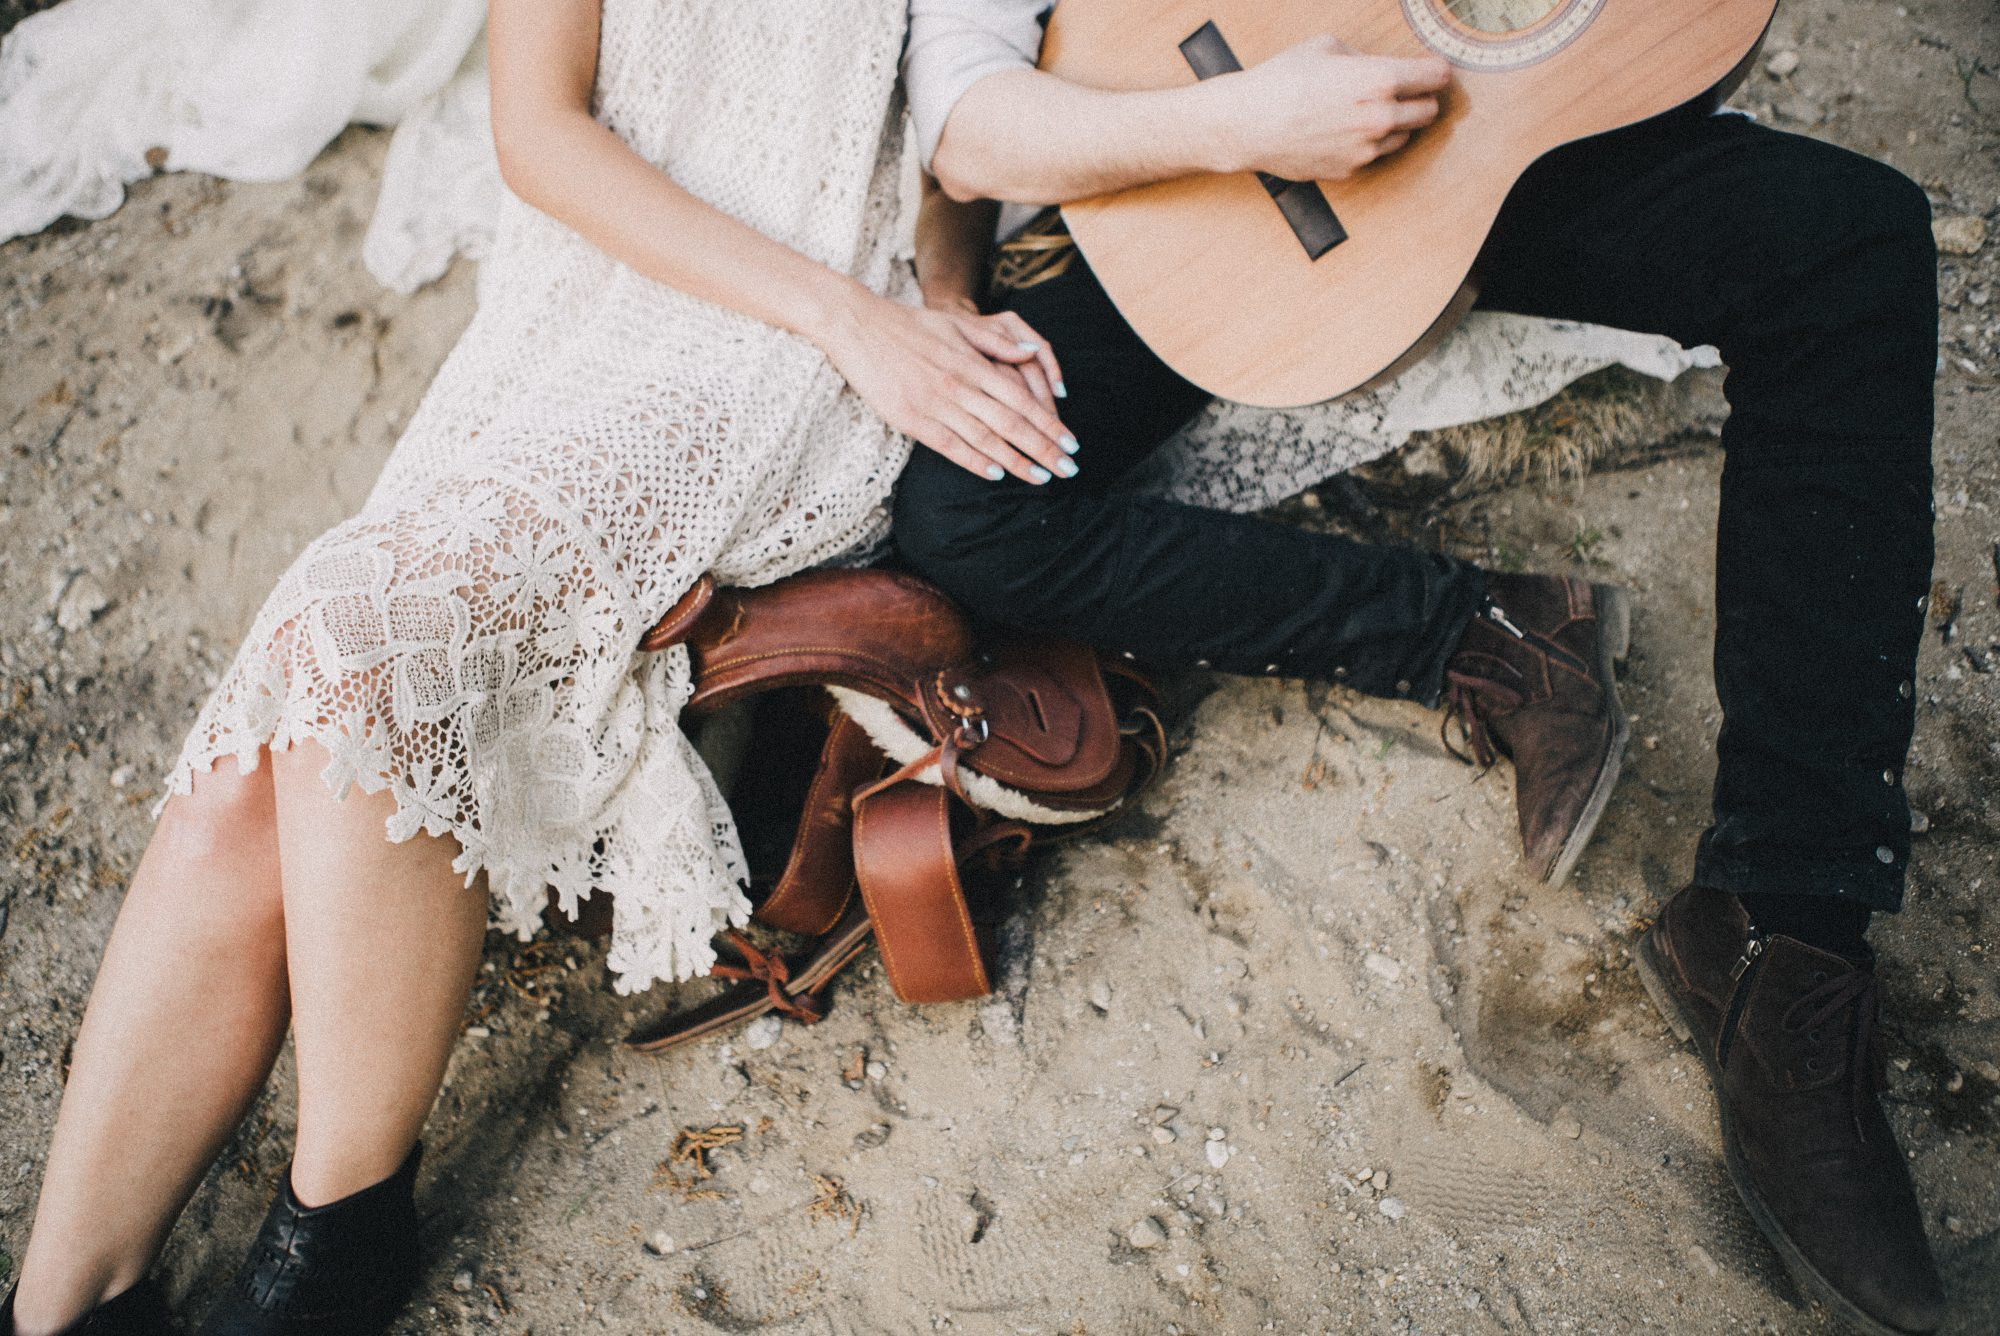 guy playing guitar while girl leans against him